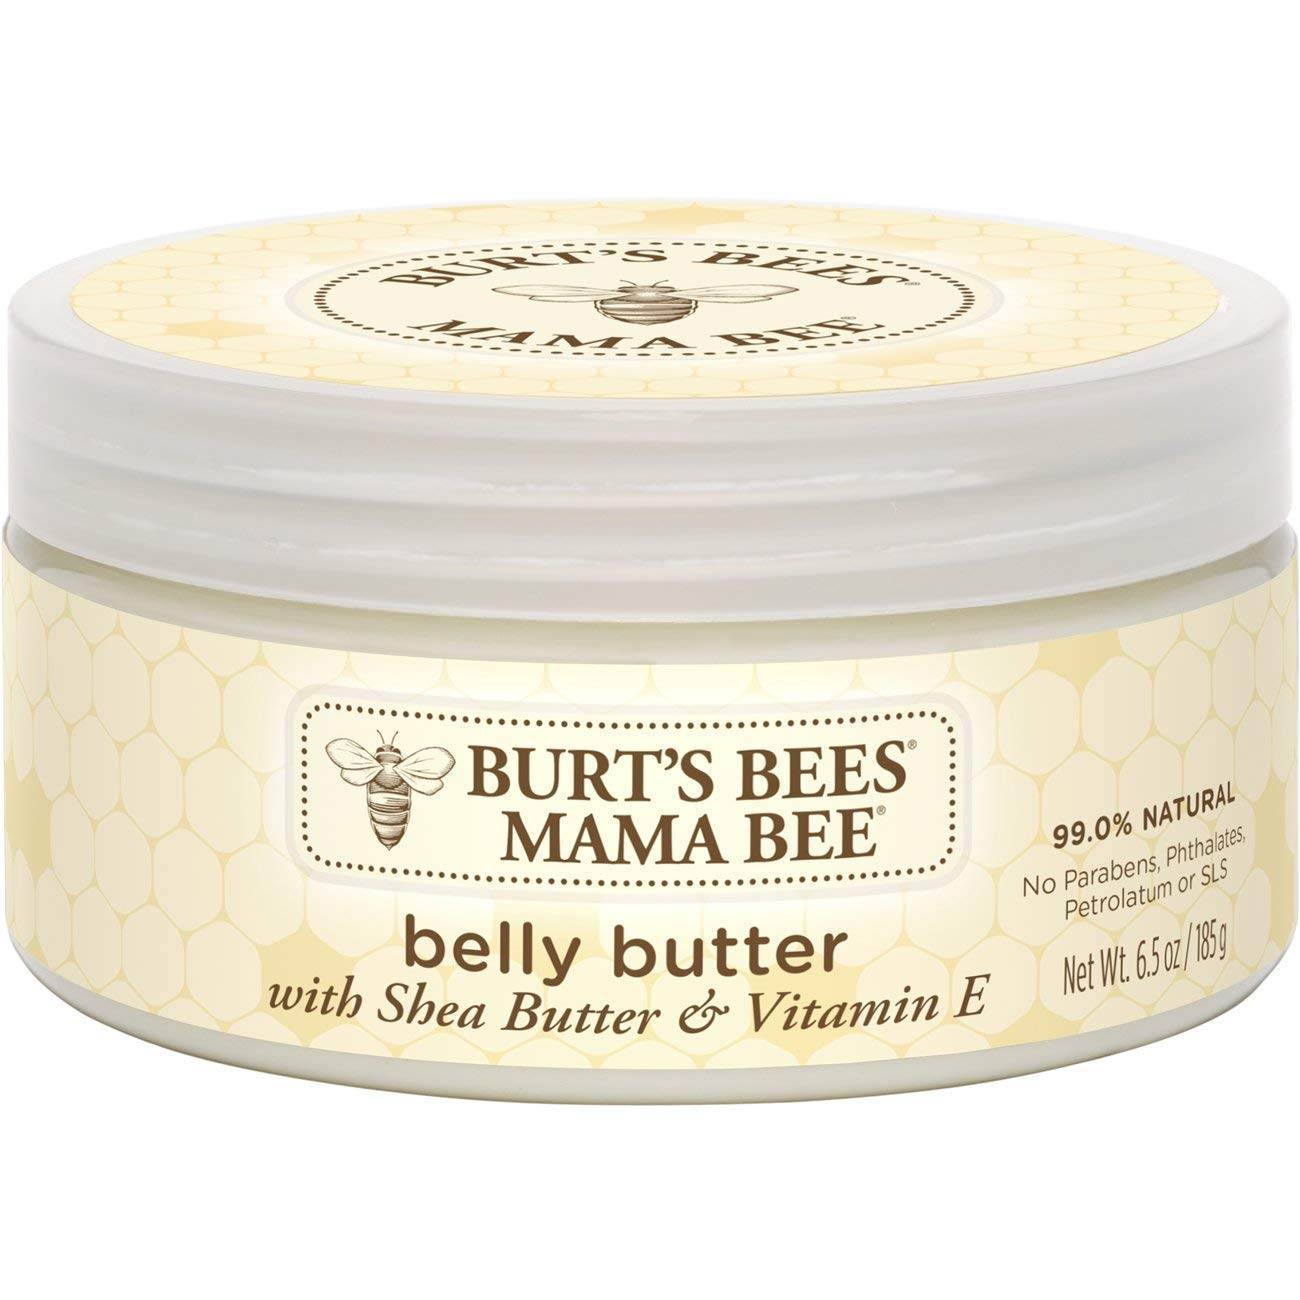 Burt's Bees Mama Bee Belly Butter, Fragrance Free Lotion, 6.5 Ounce Tub, Pack of 2